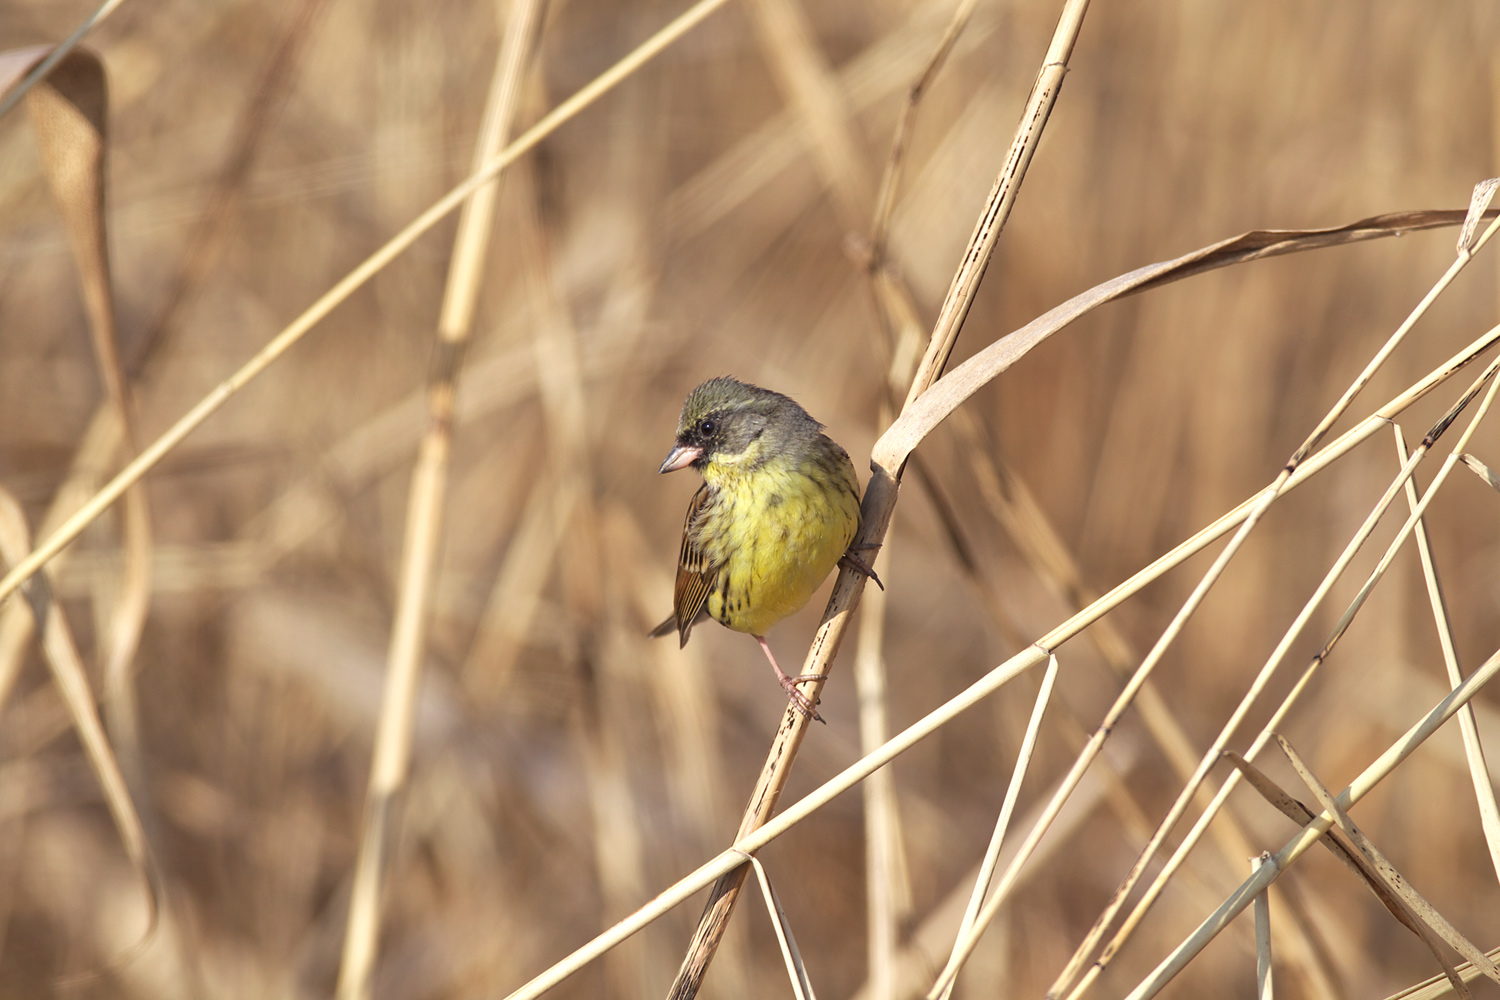 アオジ(Black-faced bunting)_d0013455_11102079.jpg